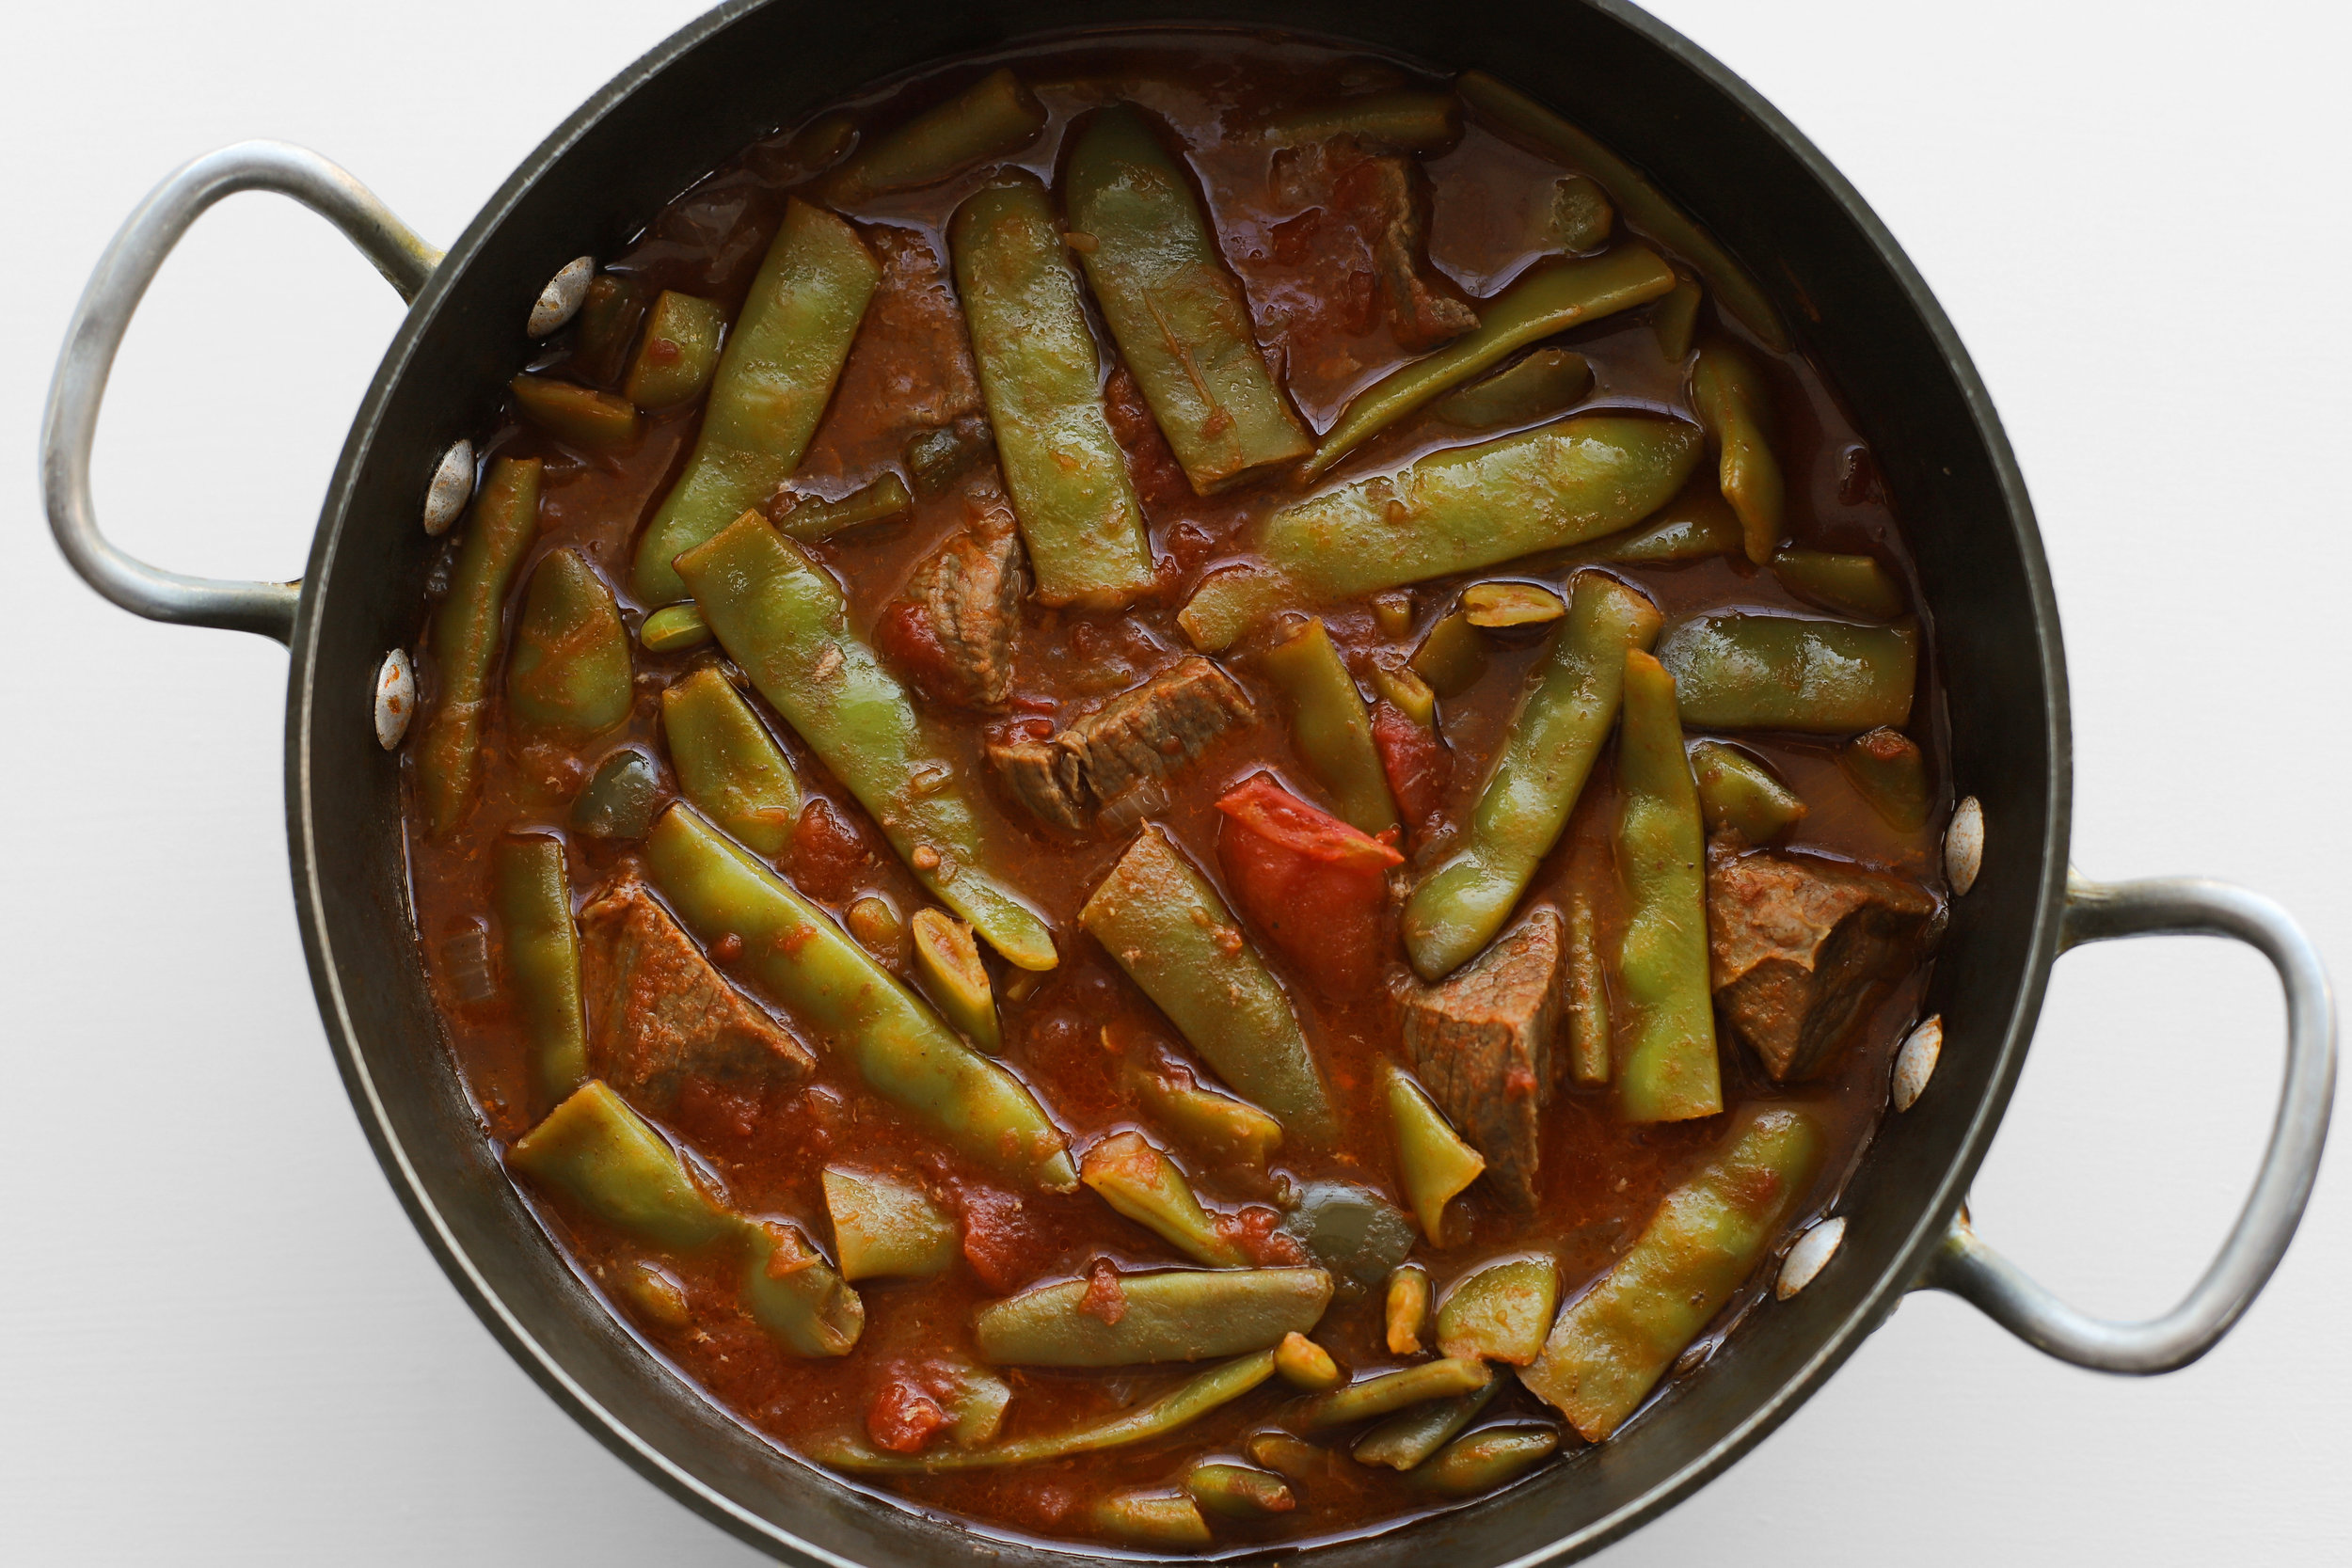 Riza shirw'it fasouleyeh (flat bean stew with rice)    But if I had to pick one that's closest to my heart, it would be riza shirw'it fasouleyeh, because it's the one I had most often growing up. There's a misconception that all Middle Eastern stews are spicy and fragrant, which is not always the case. Some are simply made with delicious vegetables and spiced simply with black pepper.